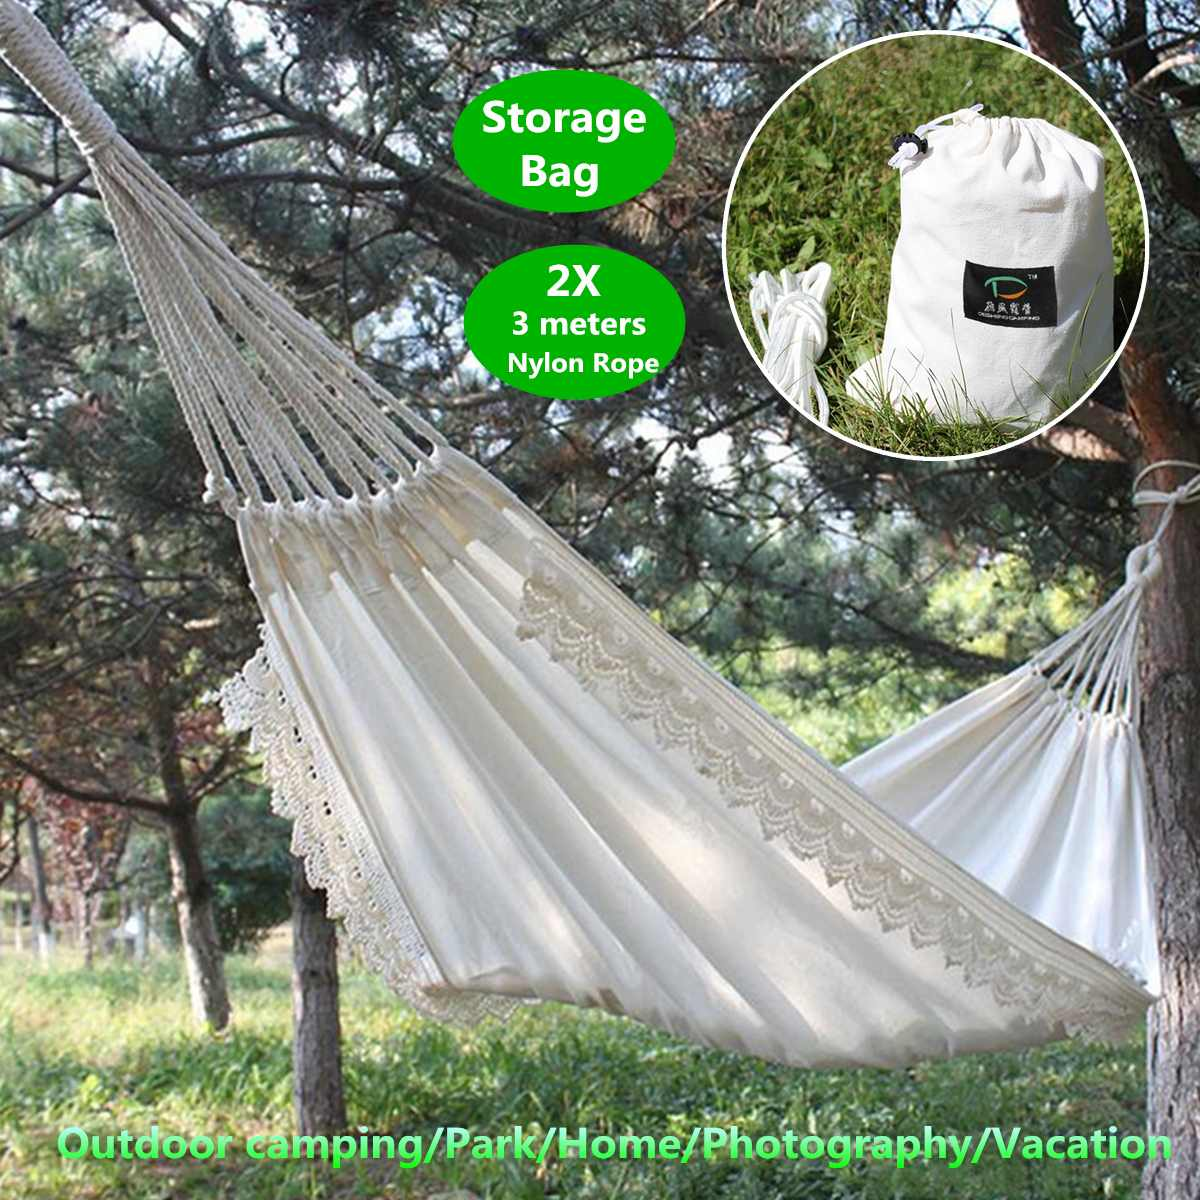 Lace Outdoor Mosquito Net Parachute Hammock Camping Hanging Sleeping Bed Swing Portable Double Chair Hamac White шарф ea7 285543 7a393 00010